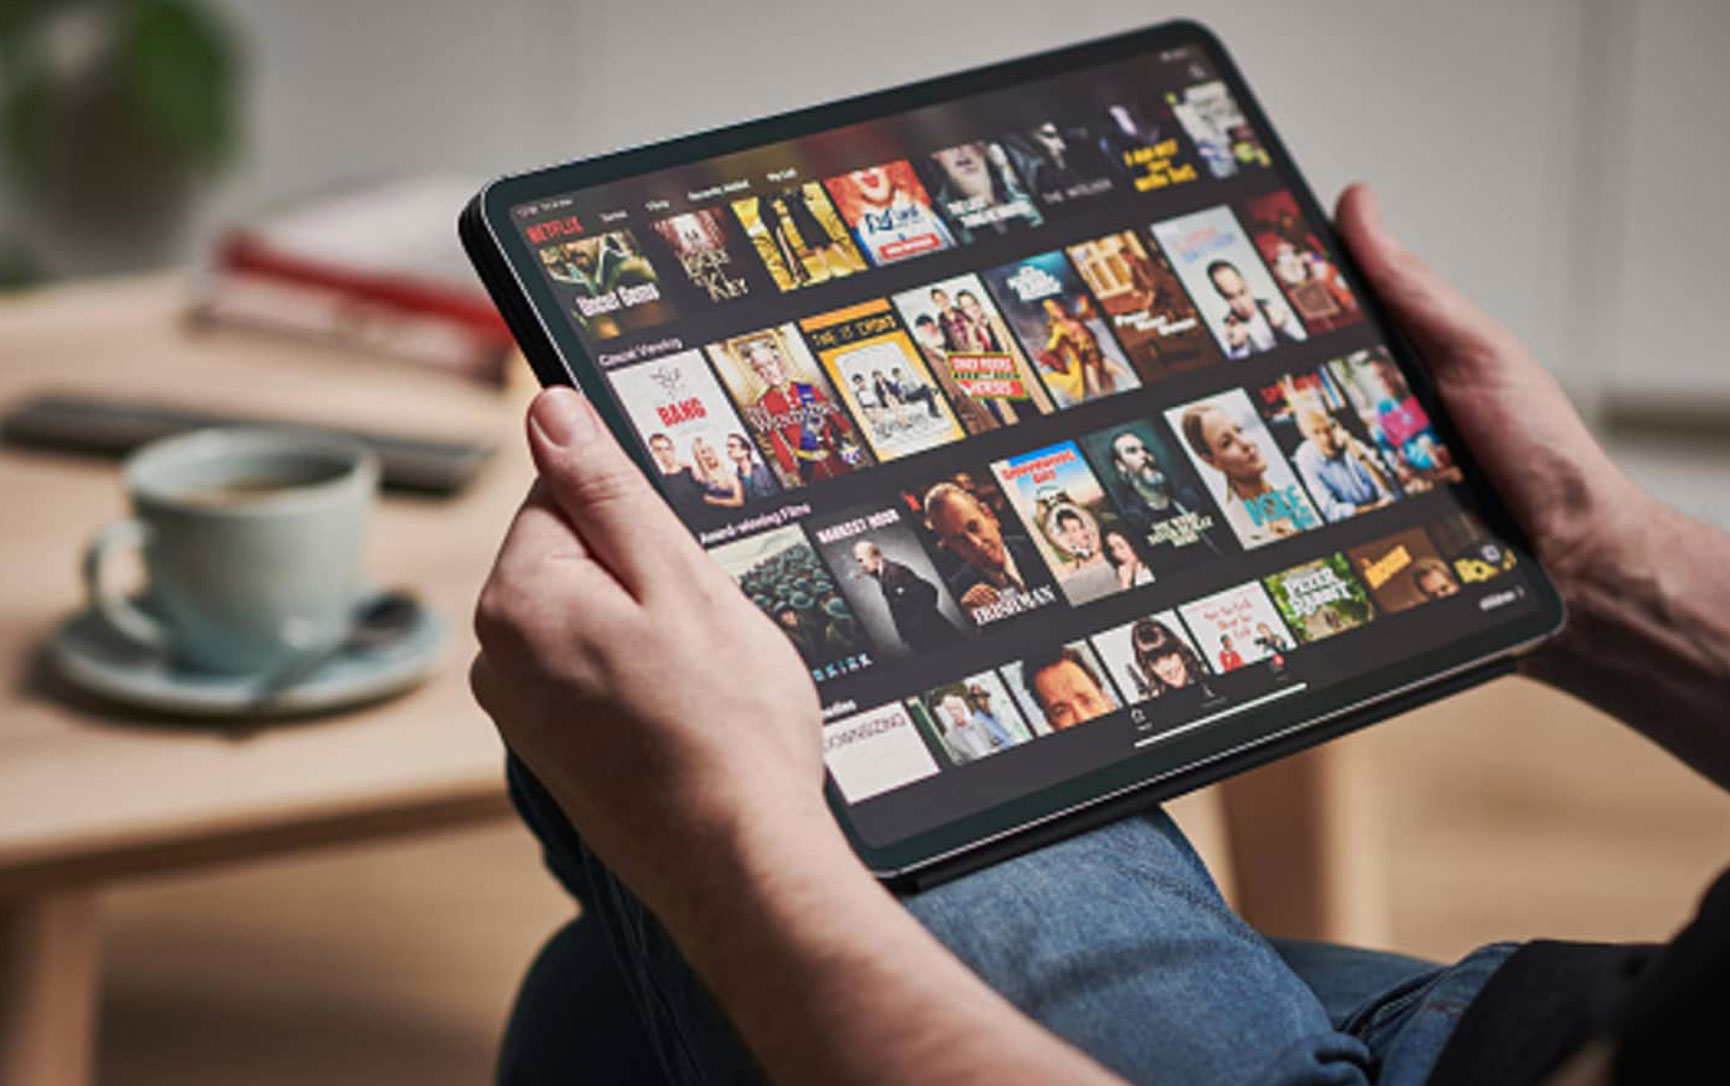 Netflix launches a free plan for Android devices